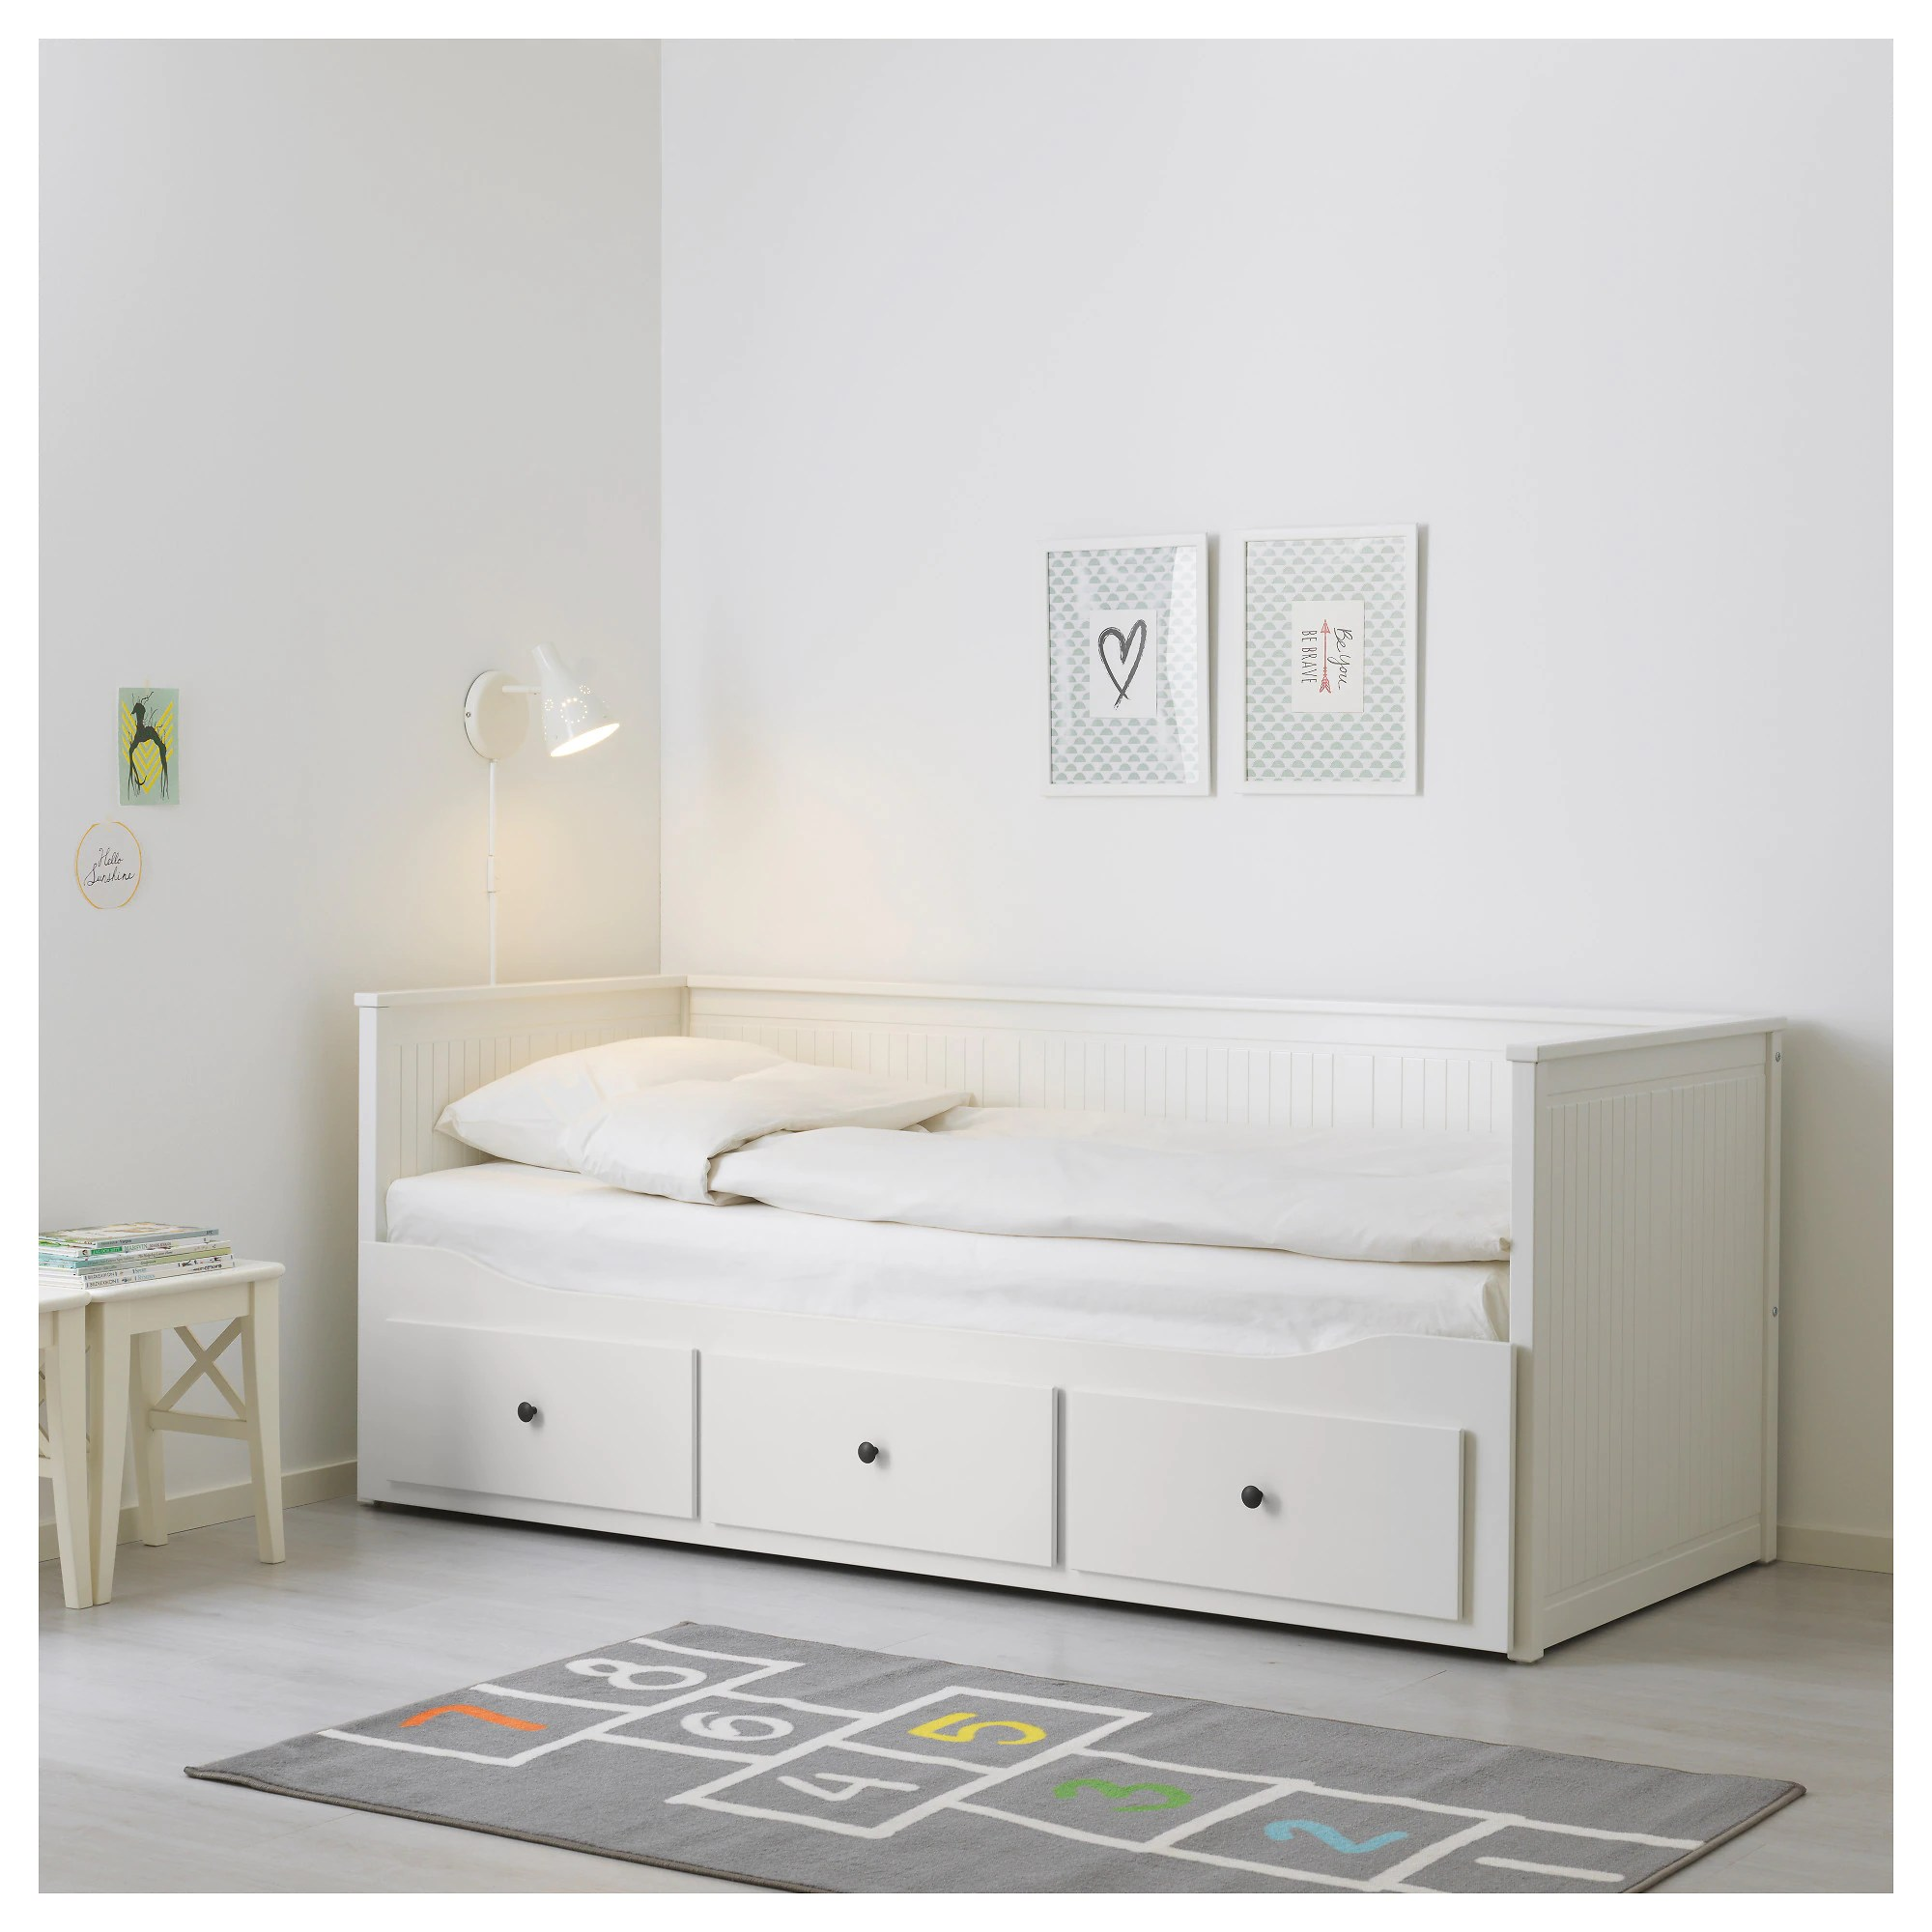 Mesa Cama Ikea Hemnes Daybed Frame With 3 Drawers White